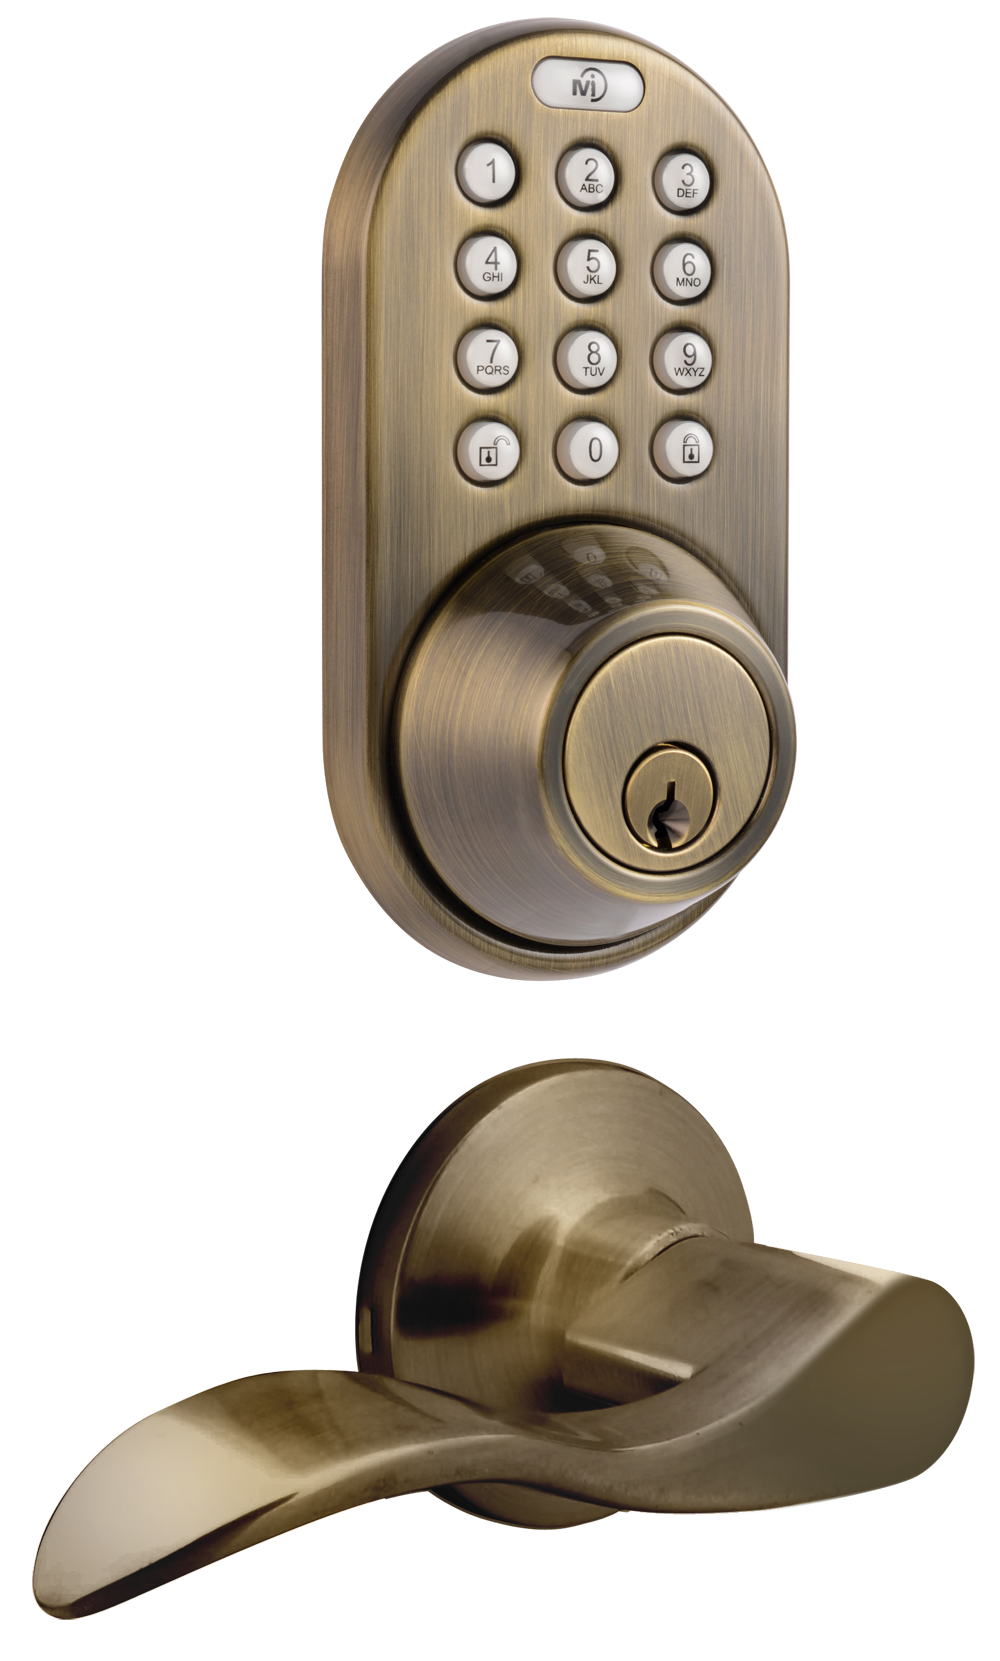 Lever Handle Lock : Milocks xfl keyless entry deadbolt and lever handle